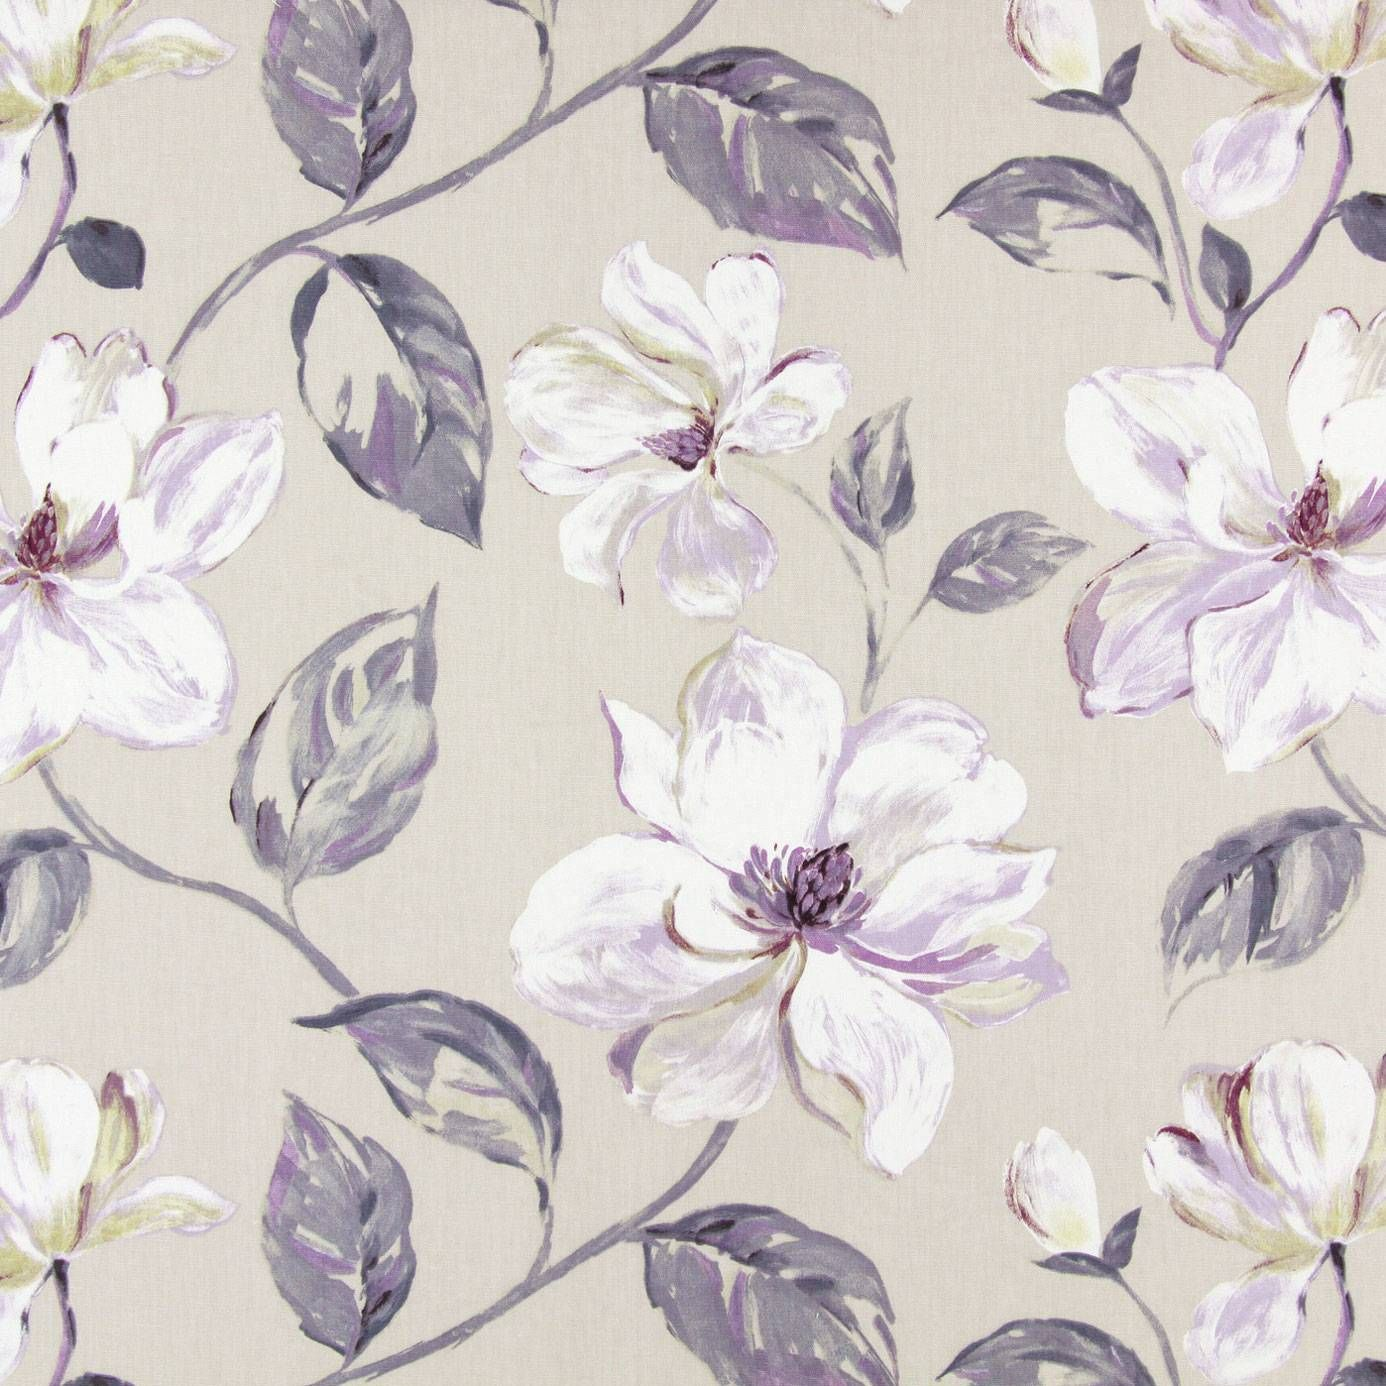 Siricusa Fabric Lavender 5962 X2f 805 Prestigious Textiles Living Fabrics Collection Watercolor Floral Print Floral Printables Floral Prints Pattern